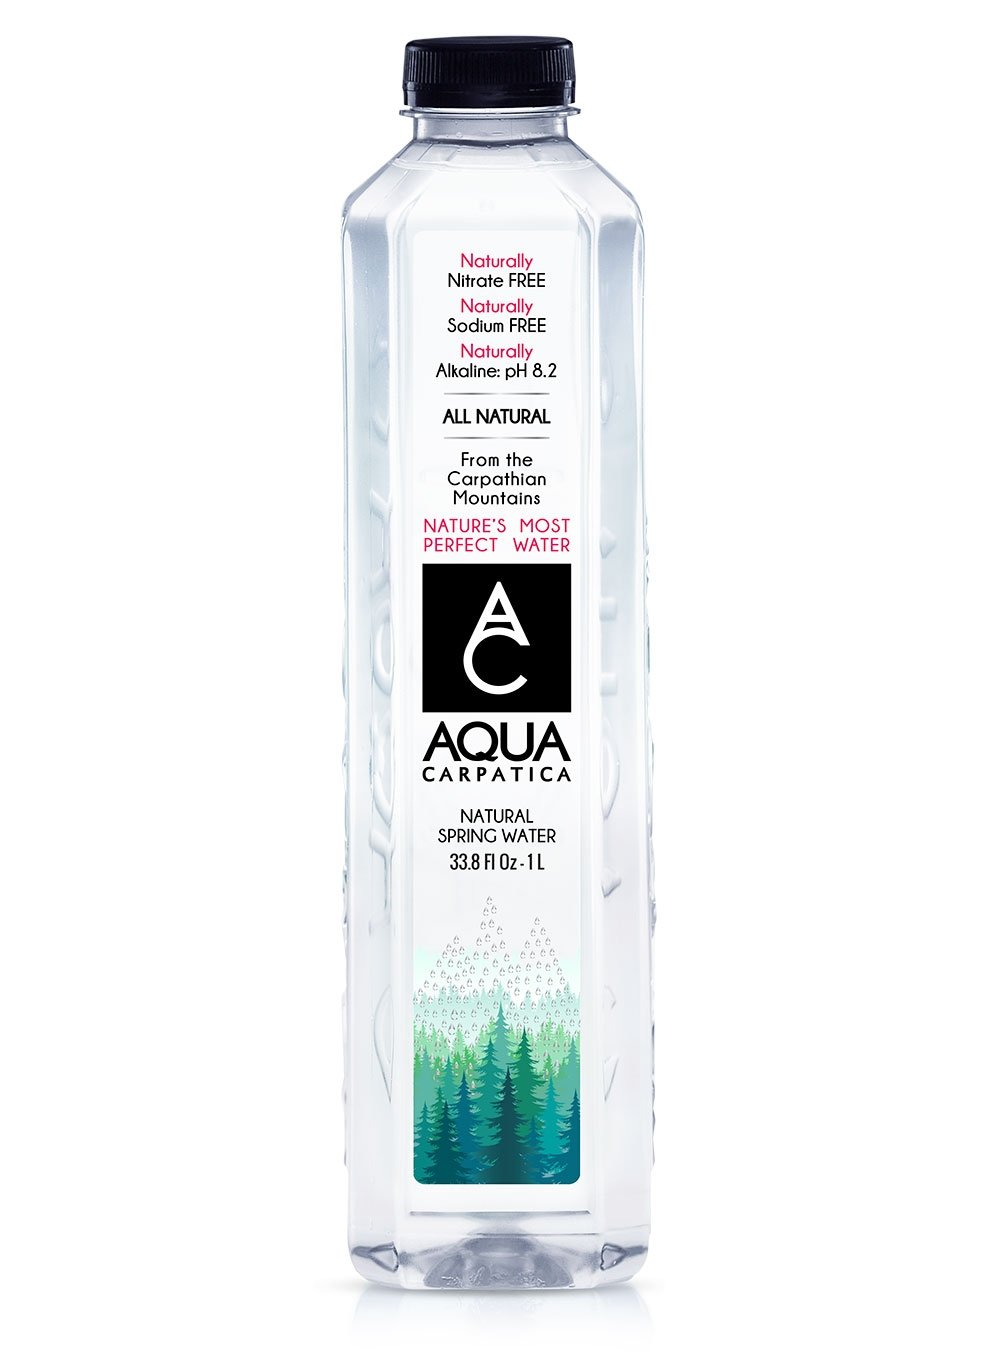 Aqua Carpatica Natural Spring Water (1L) - 12 Pack